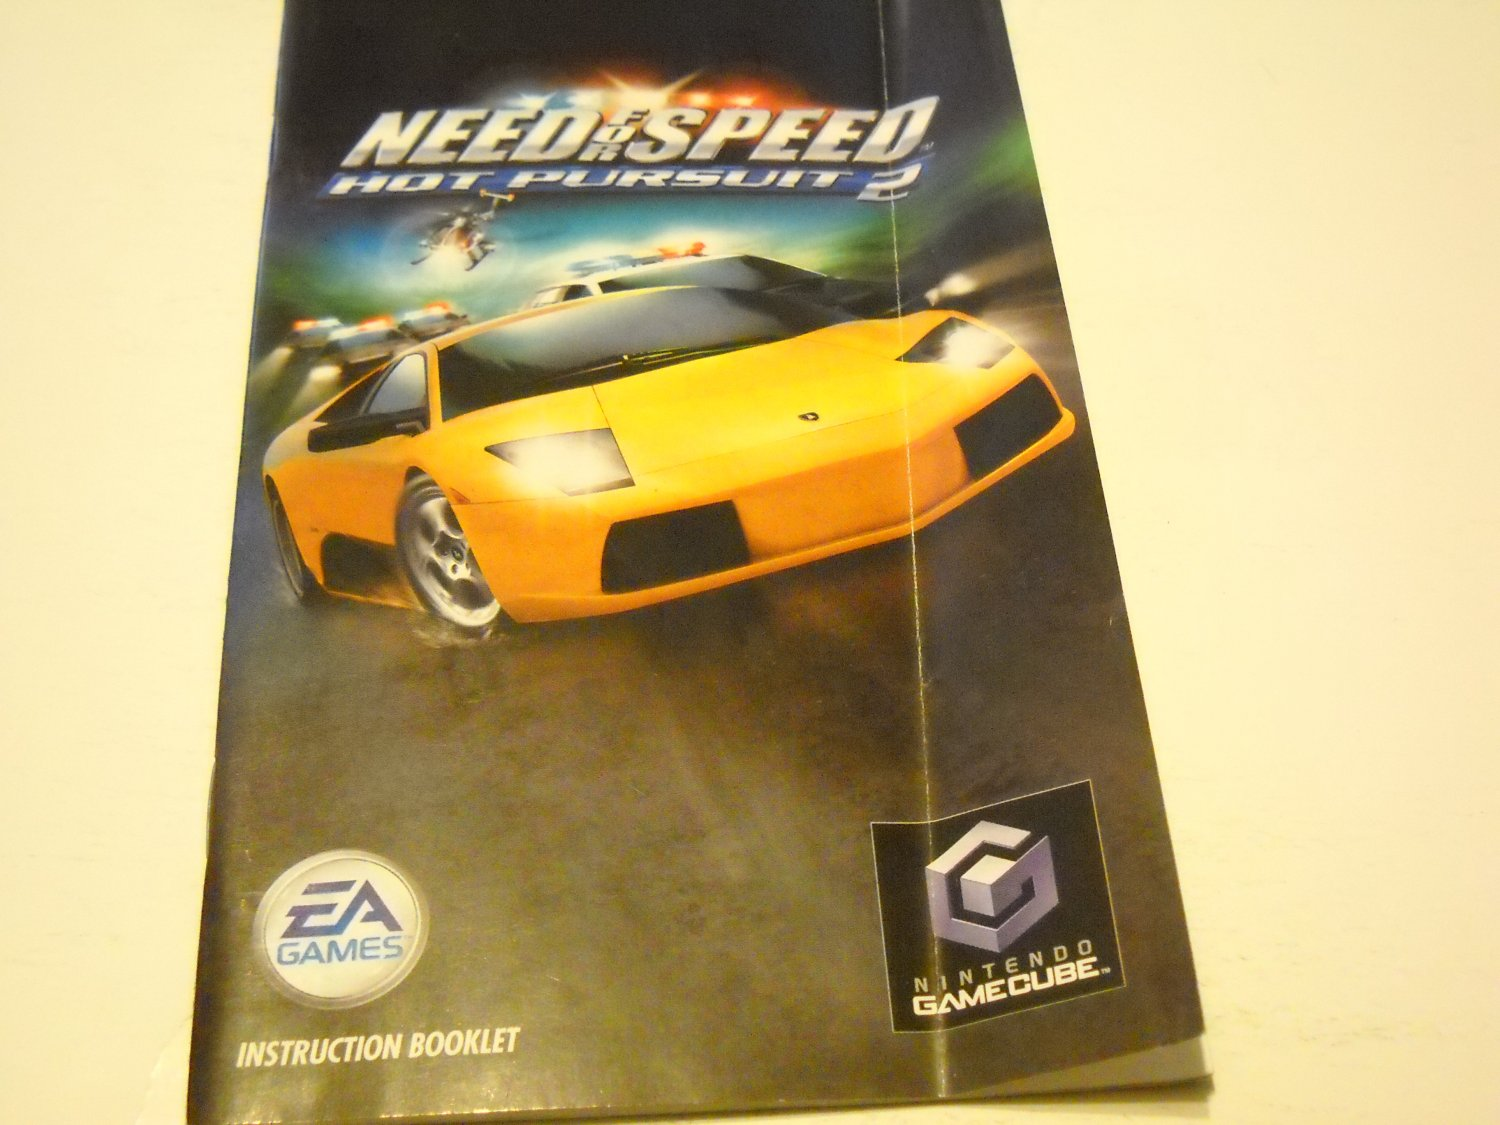 Manual ONLY ~  for Need for Speed Hot Pursuit 2   Gamecube